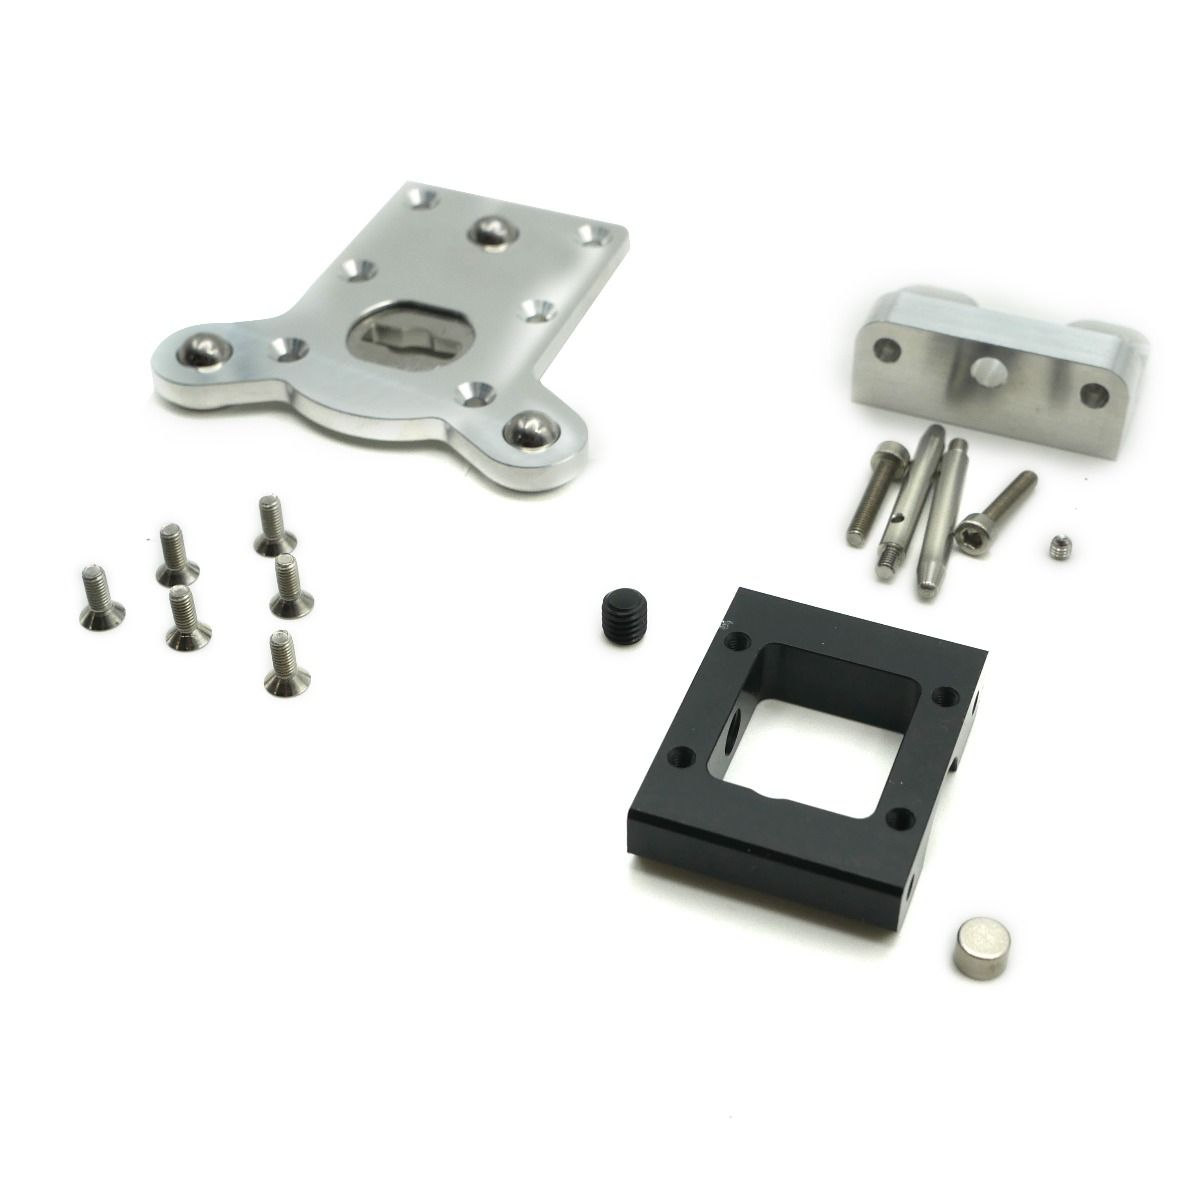 Blank Tool Plate and Dock Kit for E3D ToolChanger - 3D Printing Canada